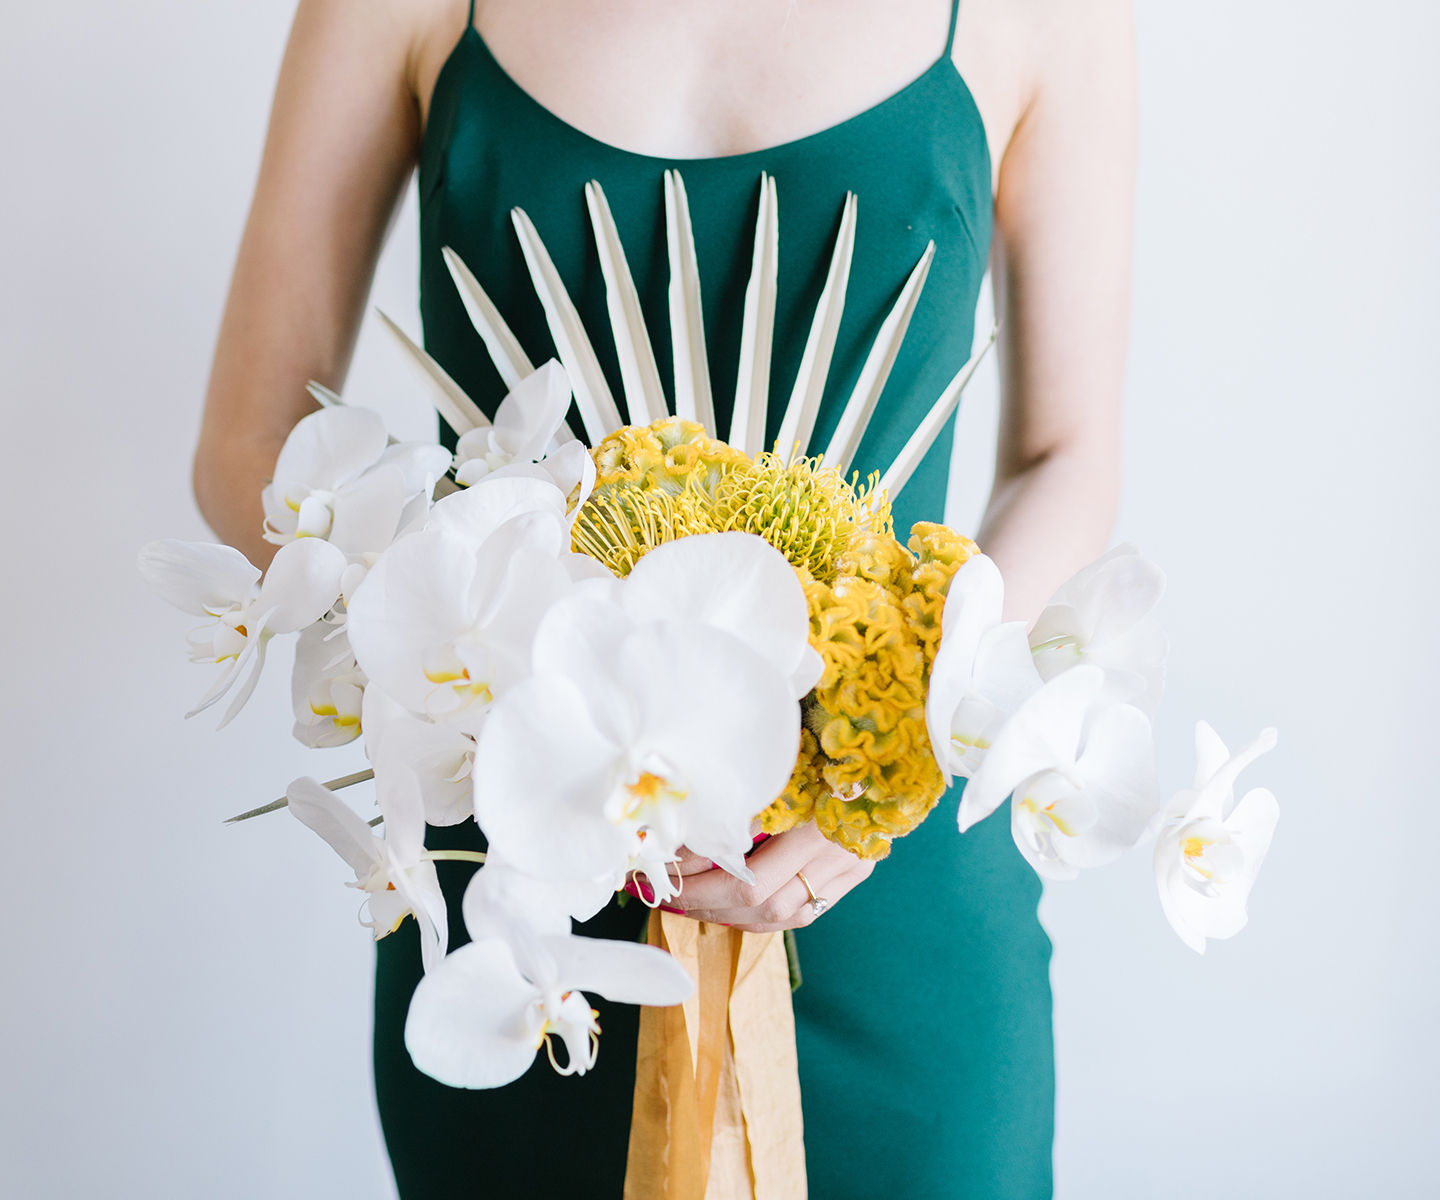 Bridal Bouquet Inspiration for Spring: 12 of the Prettiest Bouquets We've Seen This Spring in Alberta and the Rockies - Always by Sunny on The Bronte Bride